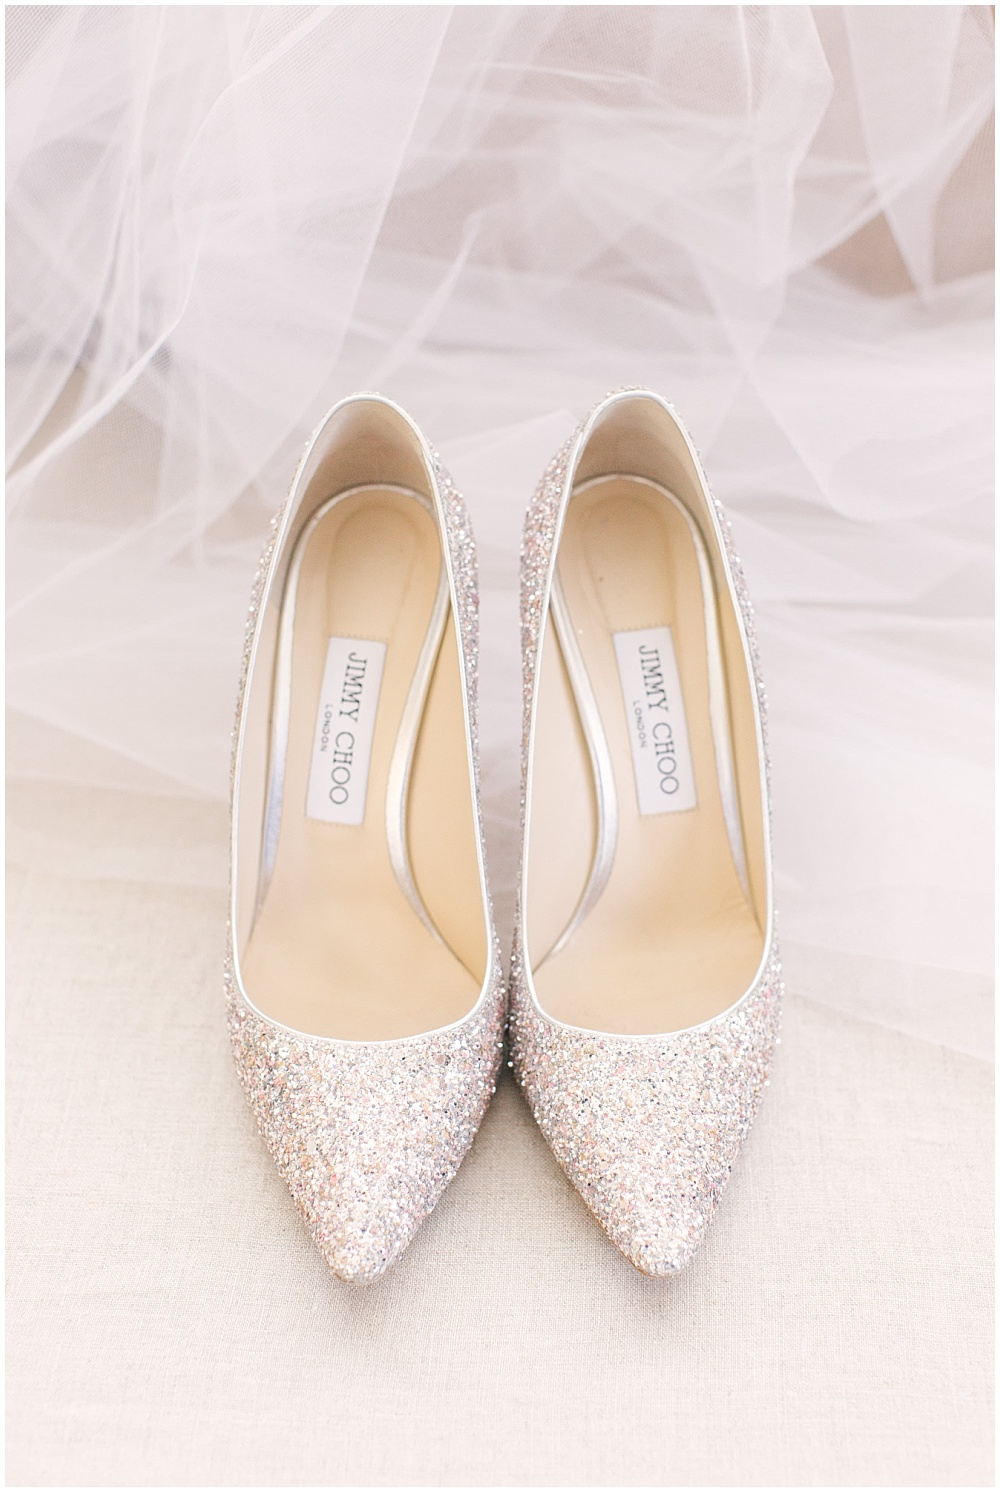 gold jimmy choo shoes; bridal shoes; Navy + blush wedding; Scottish Rite Cathedral Indianapolis | Traci & Troy Photography and Jessica Dum Wedding Coordination